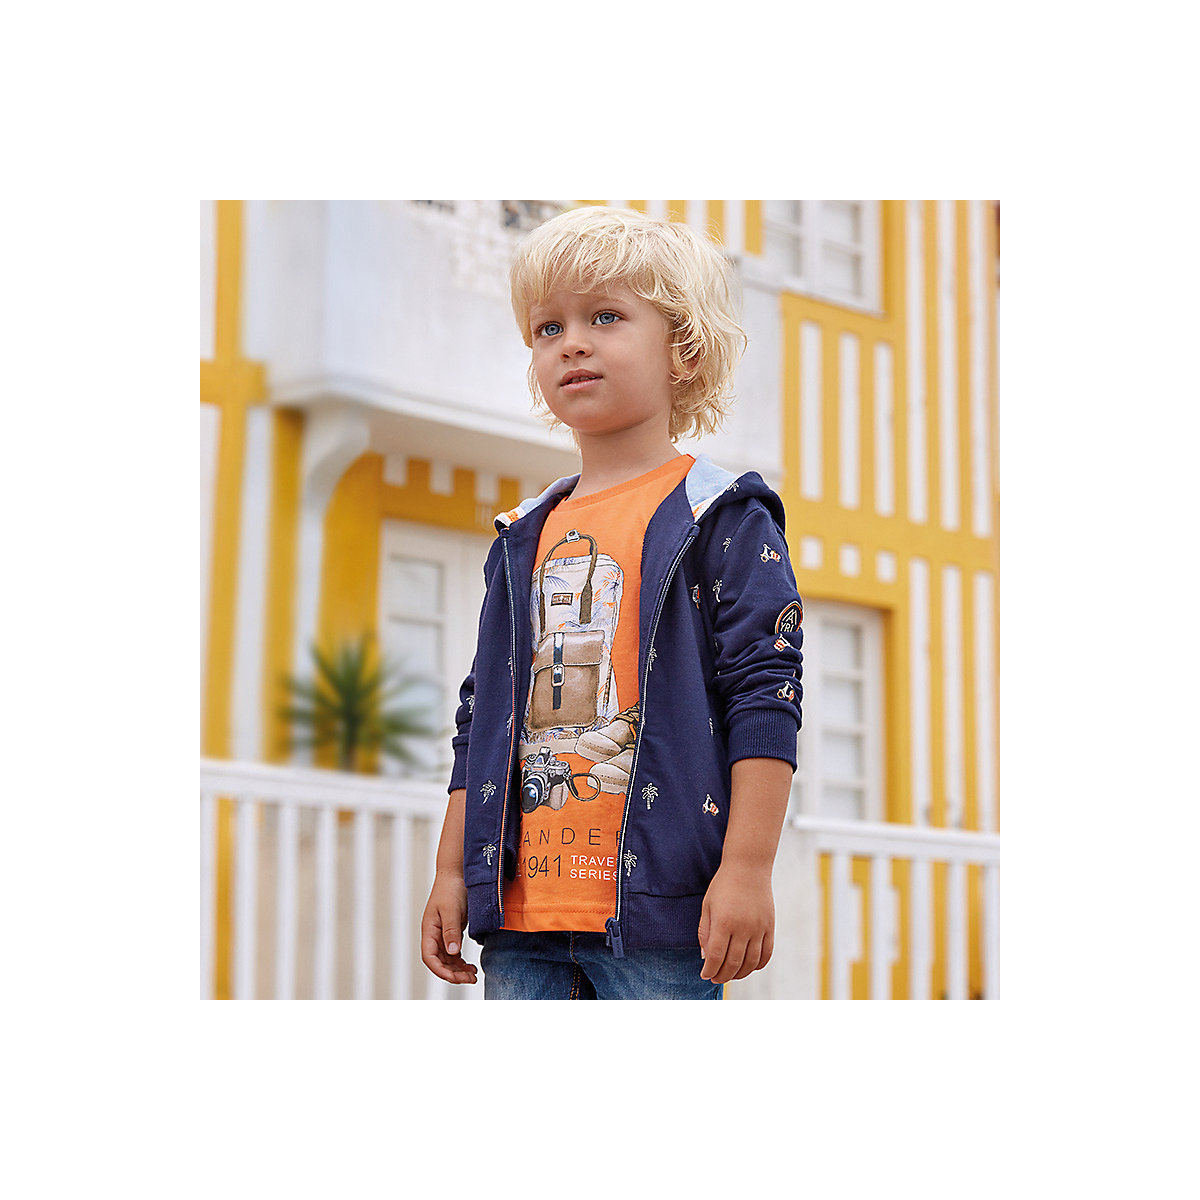 Фото - MAYORAL Hoodies & Sweatshirts 10685144 pullover jumper for boys and girls clothes children's sweatshirt Cotton Boys mayoral sweaters 10692403 pullover jumper for boys and girls jackets boys